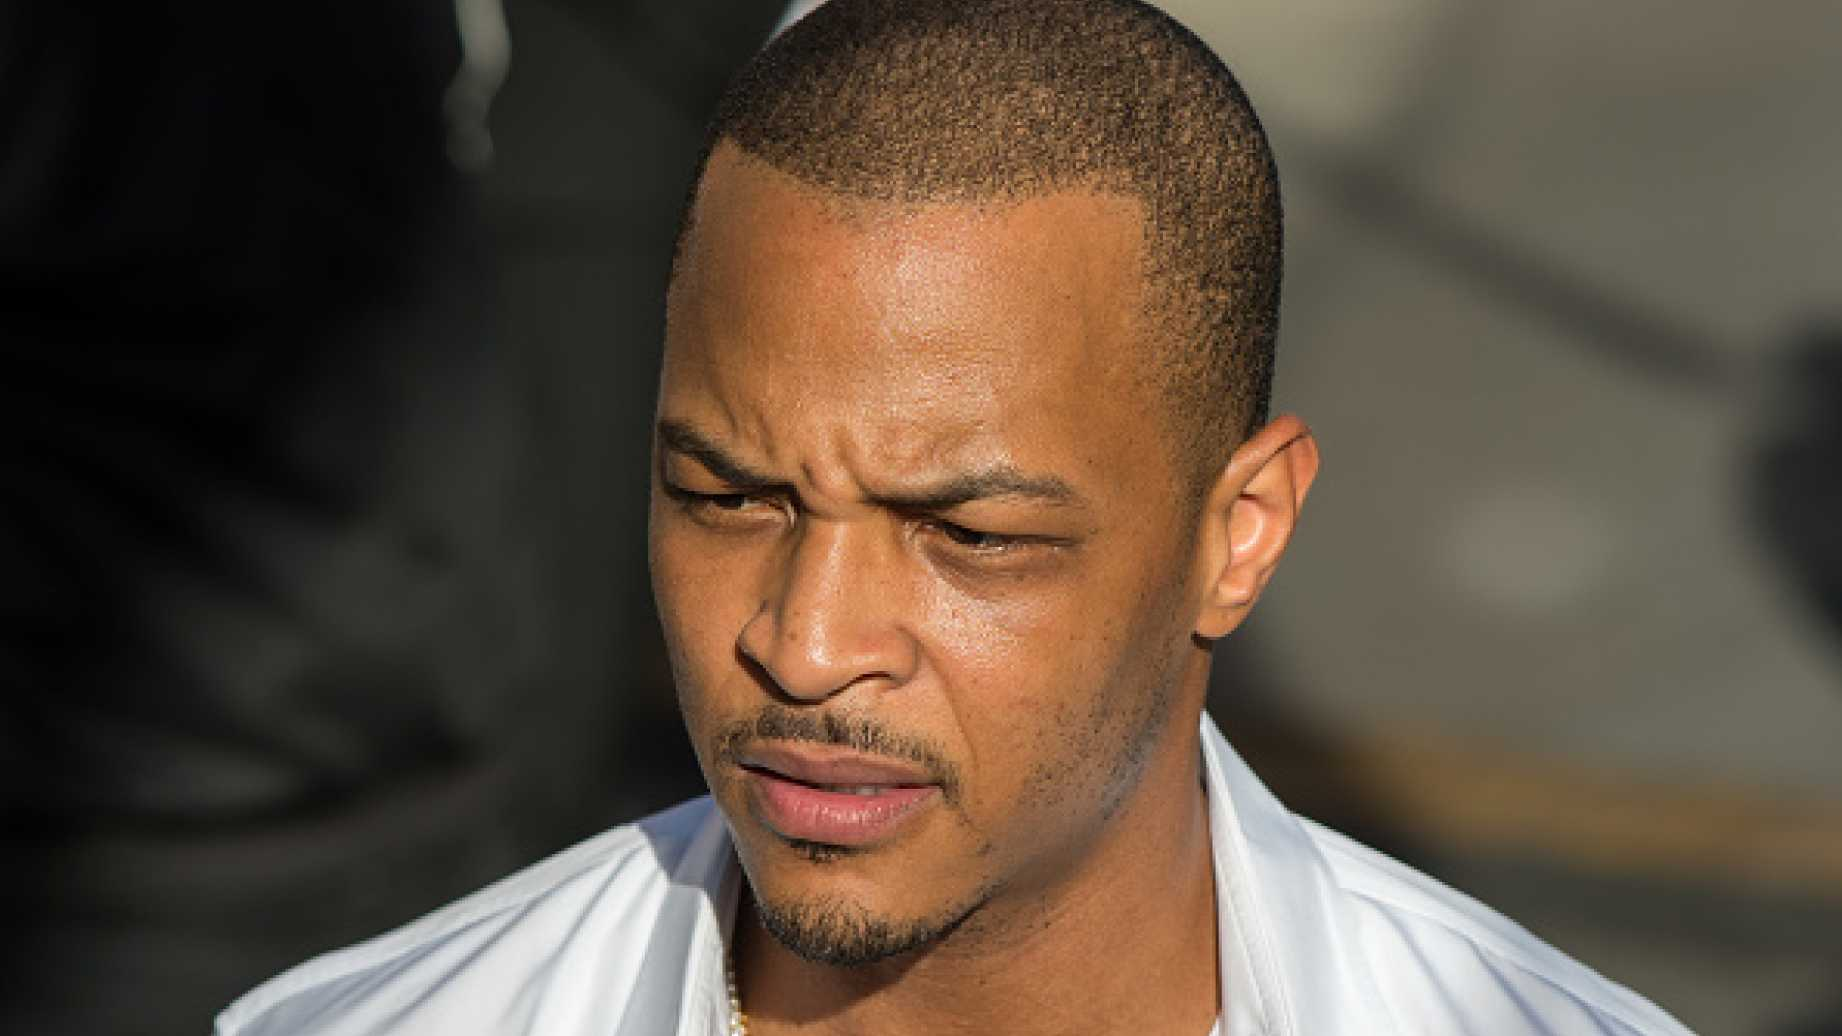 T.I. Talks About Drug Dealers Turned Millionaires Who Changed Their Ways Thank To Hip Hop And Trap